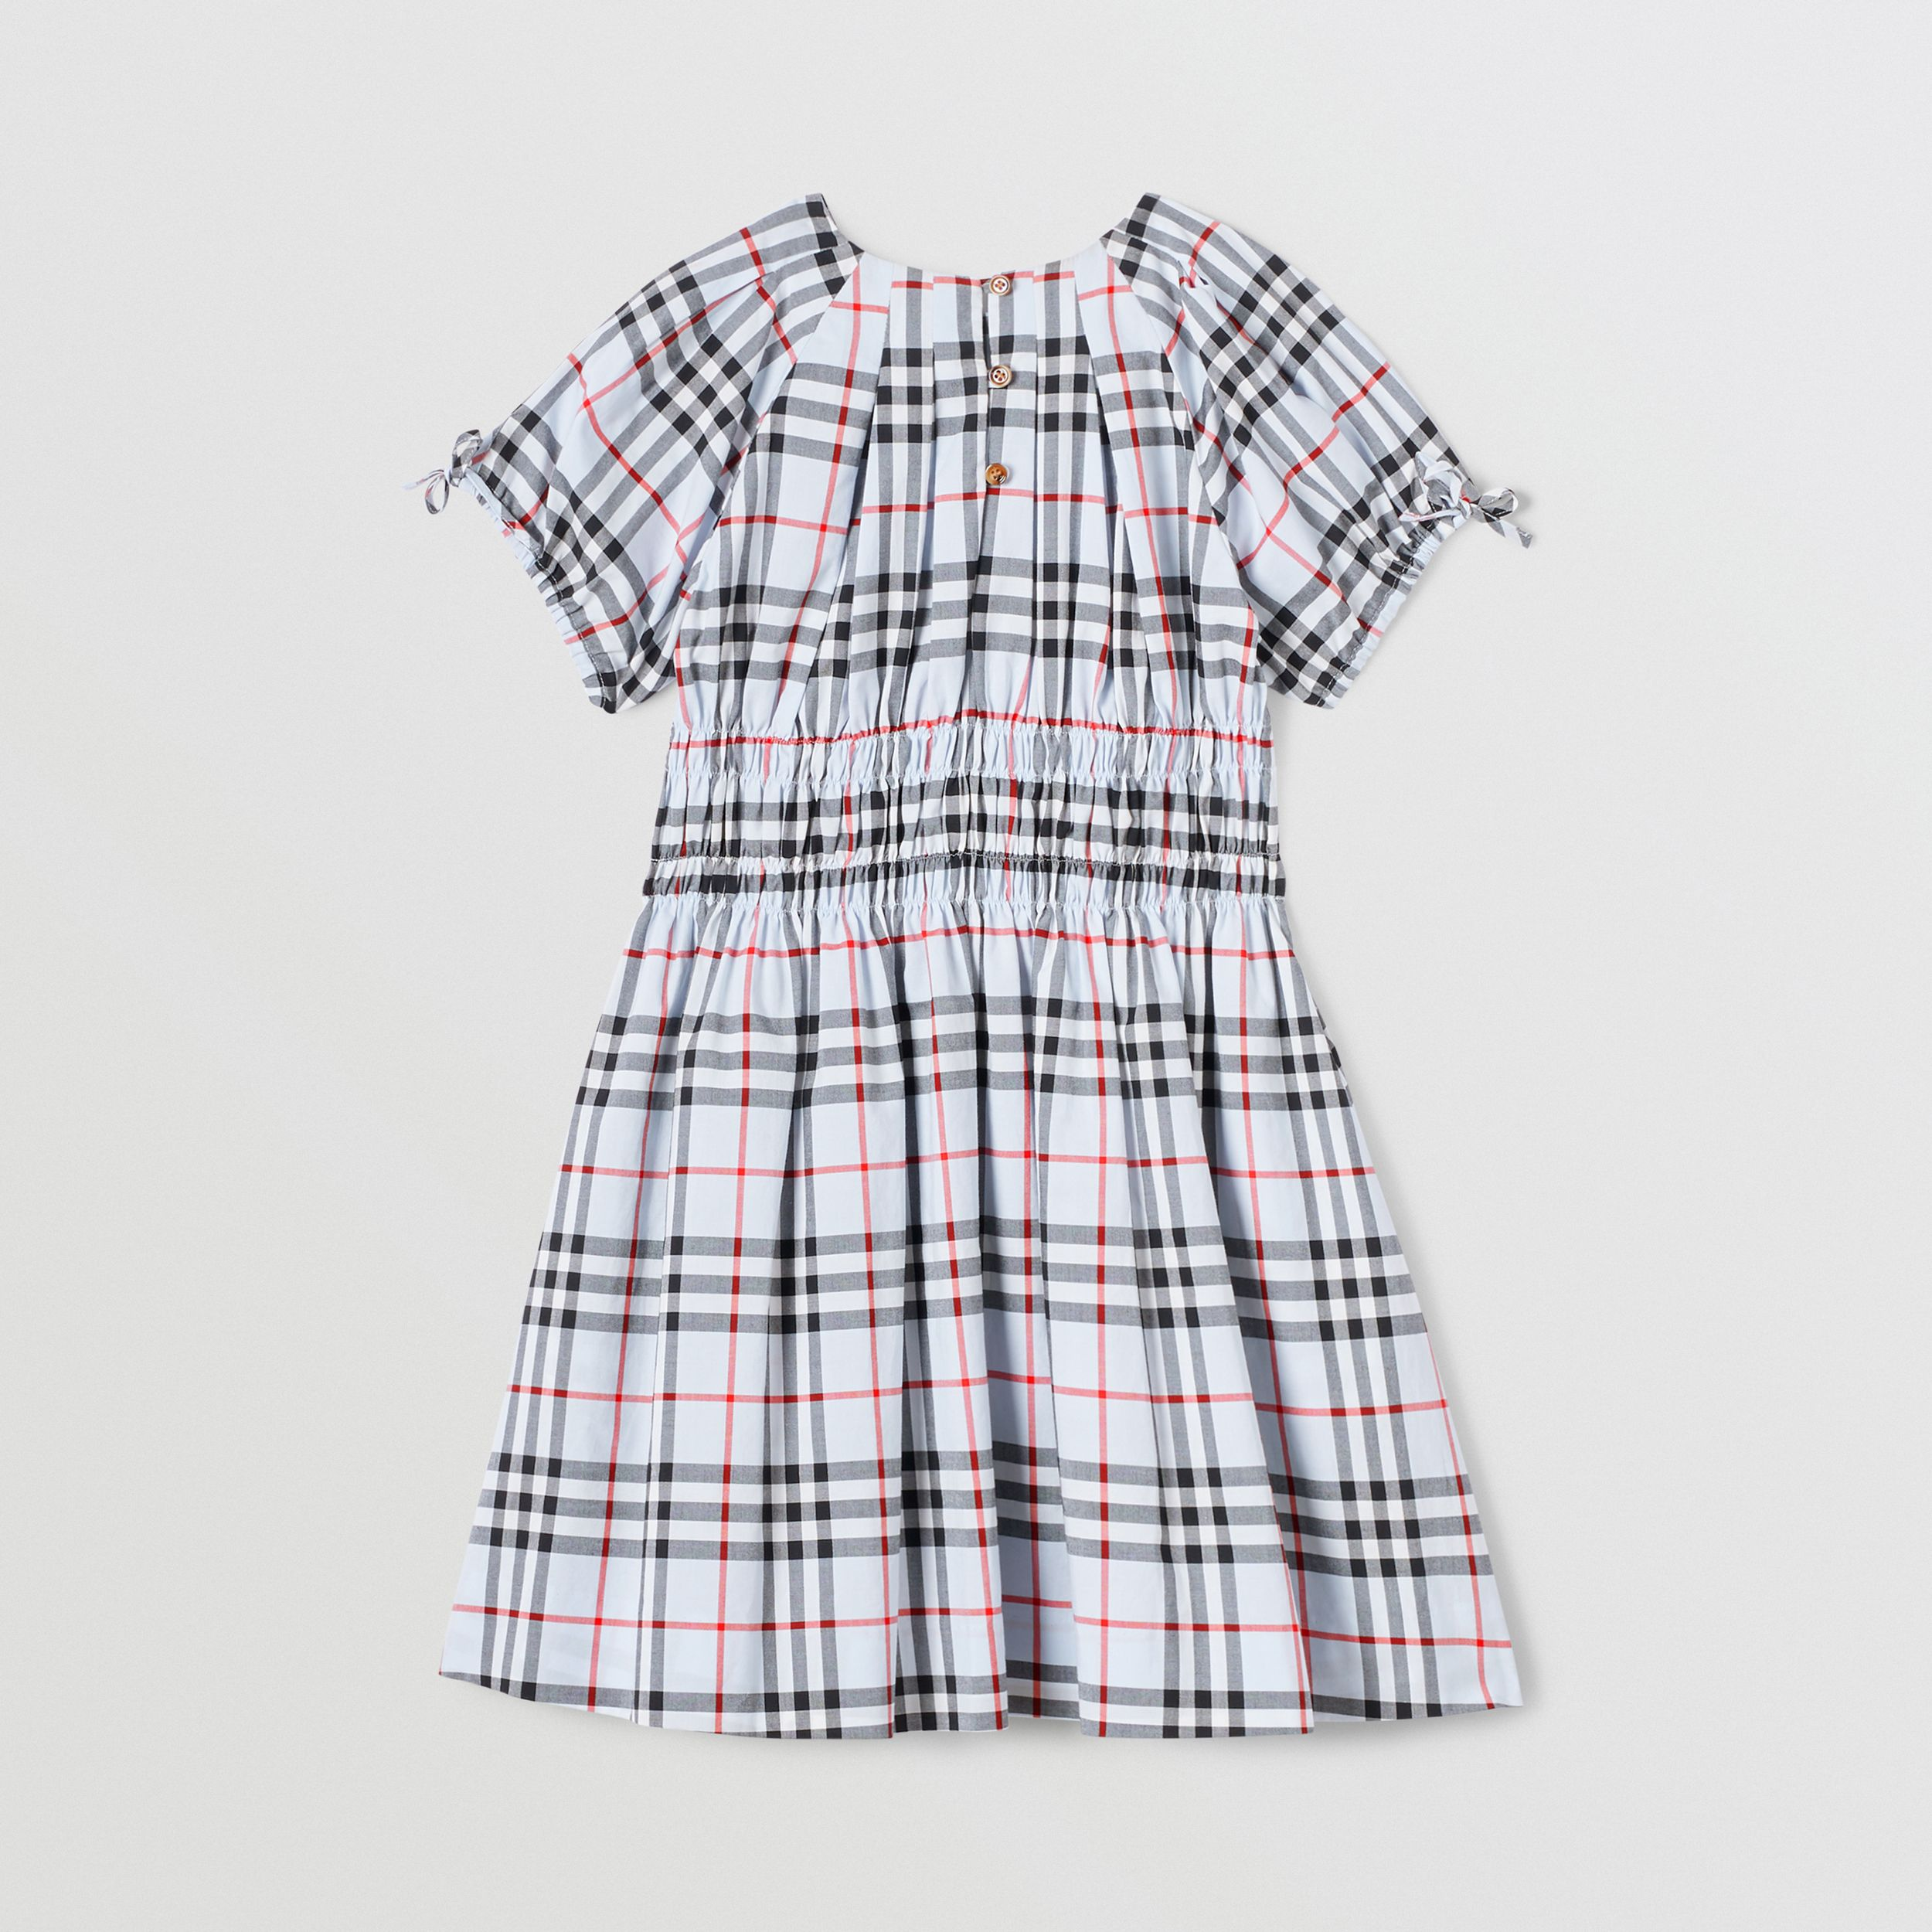 Ruched Panel Vintage Check Cotton Dress in Pale Blue | Burberry Australia - 4